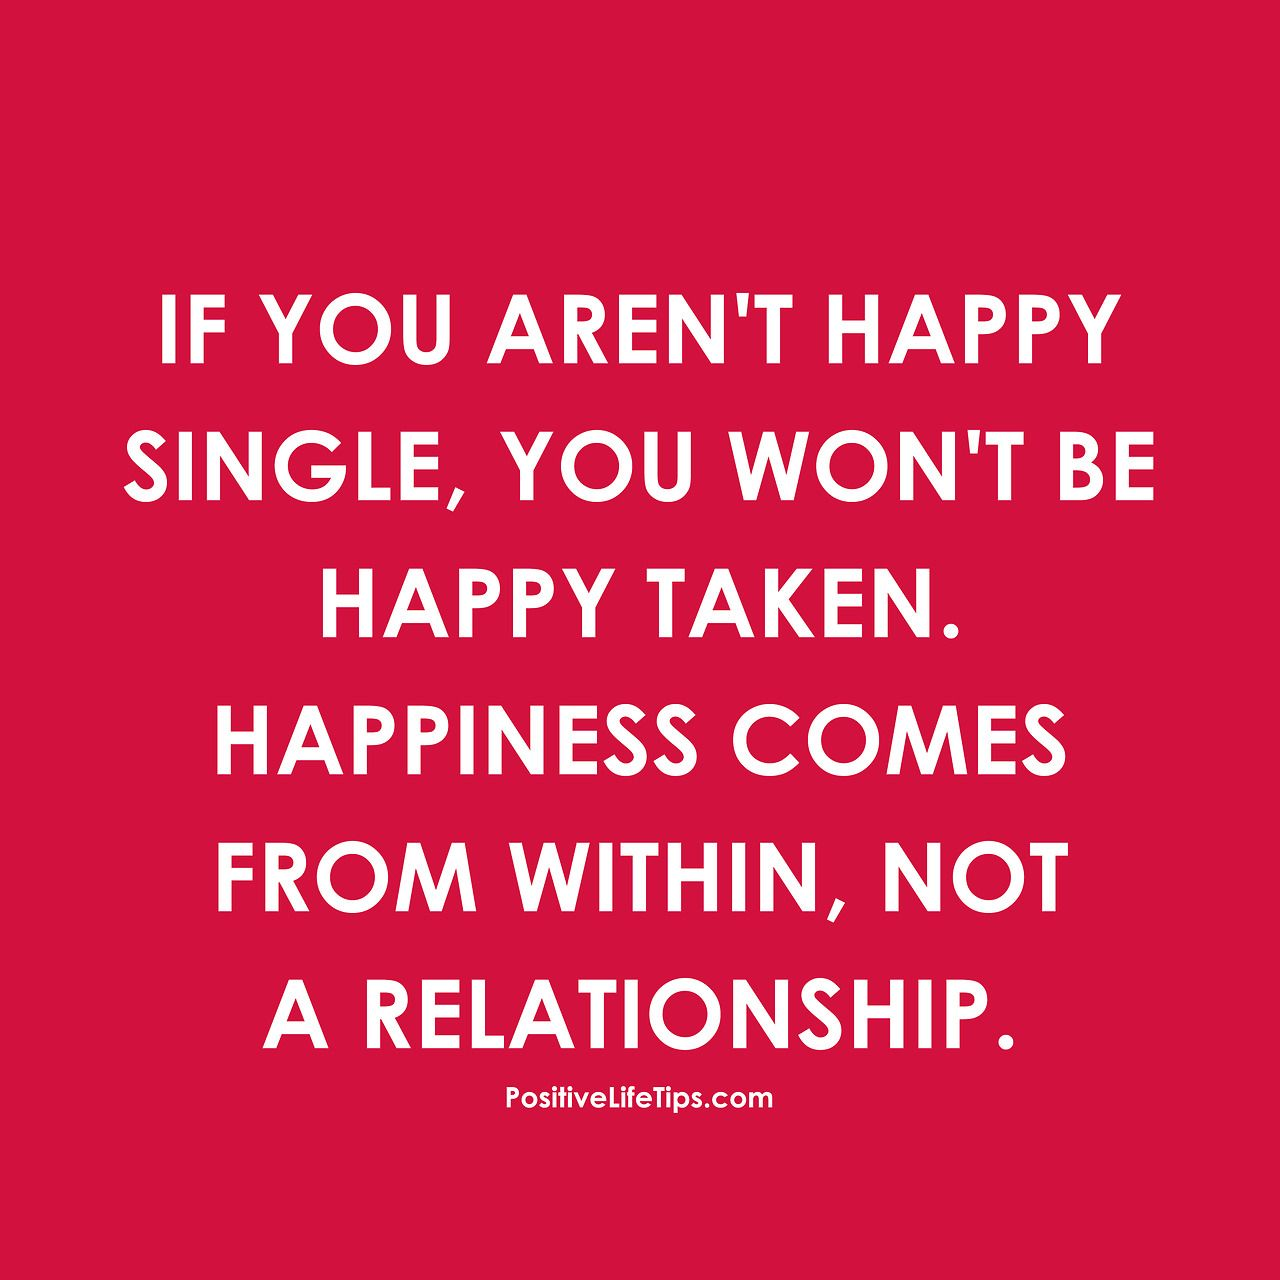 Happy To Be Single Quotes For Guys: If You Aren't Happy Single, You Won't Be Happy Taken